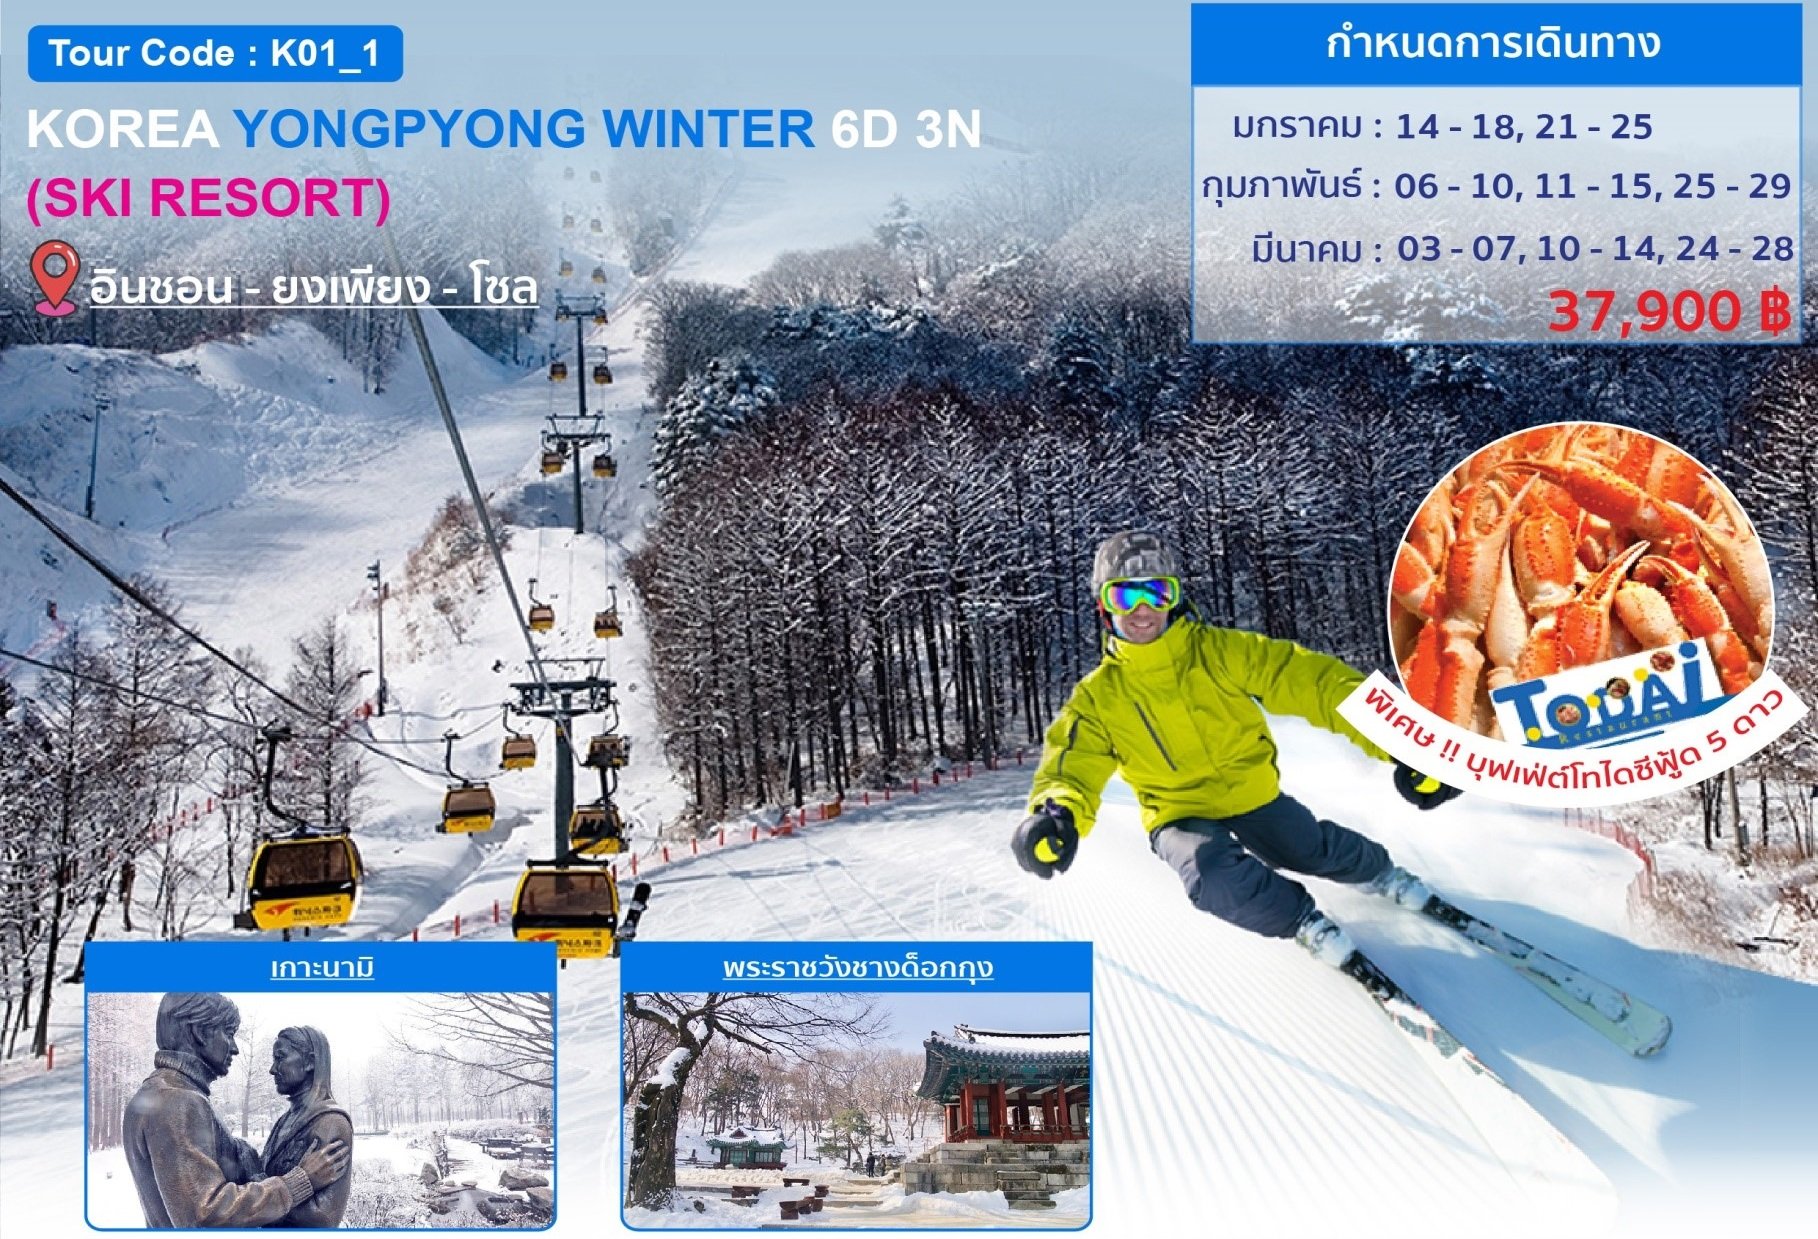 ทัวร์เกาหลี-KOREA-YONGPYONG-WINTER-SKI-RESORT-6D-3N-(TG)-(MAR20)-(K01_1)